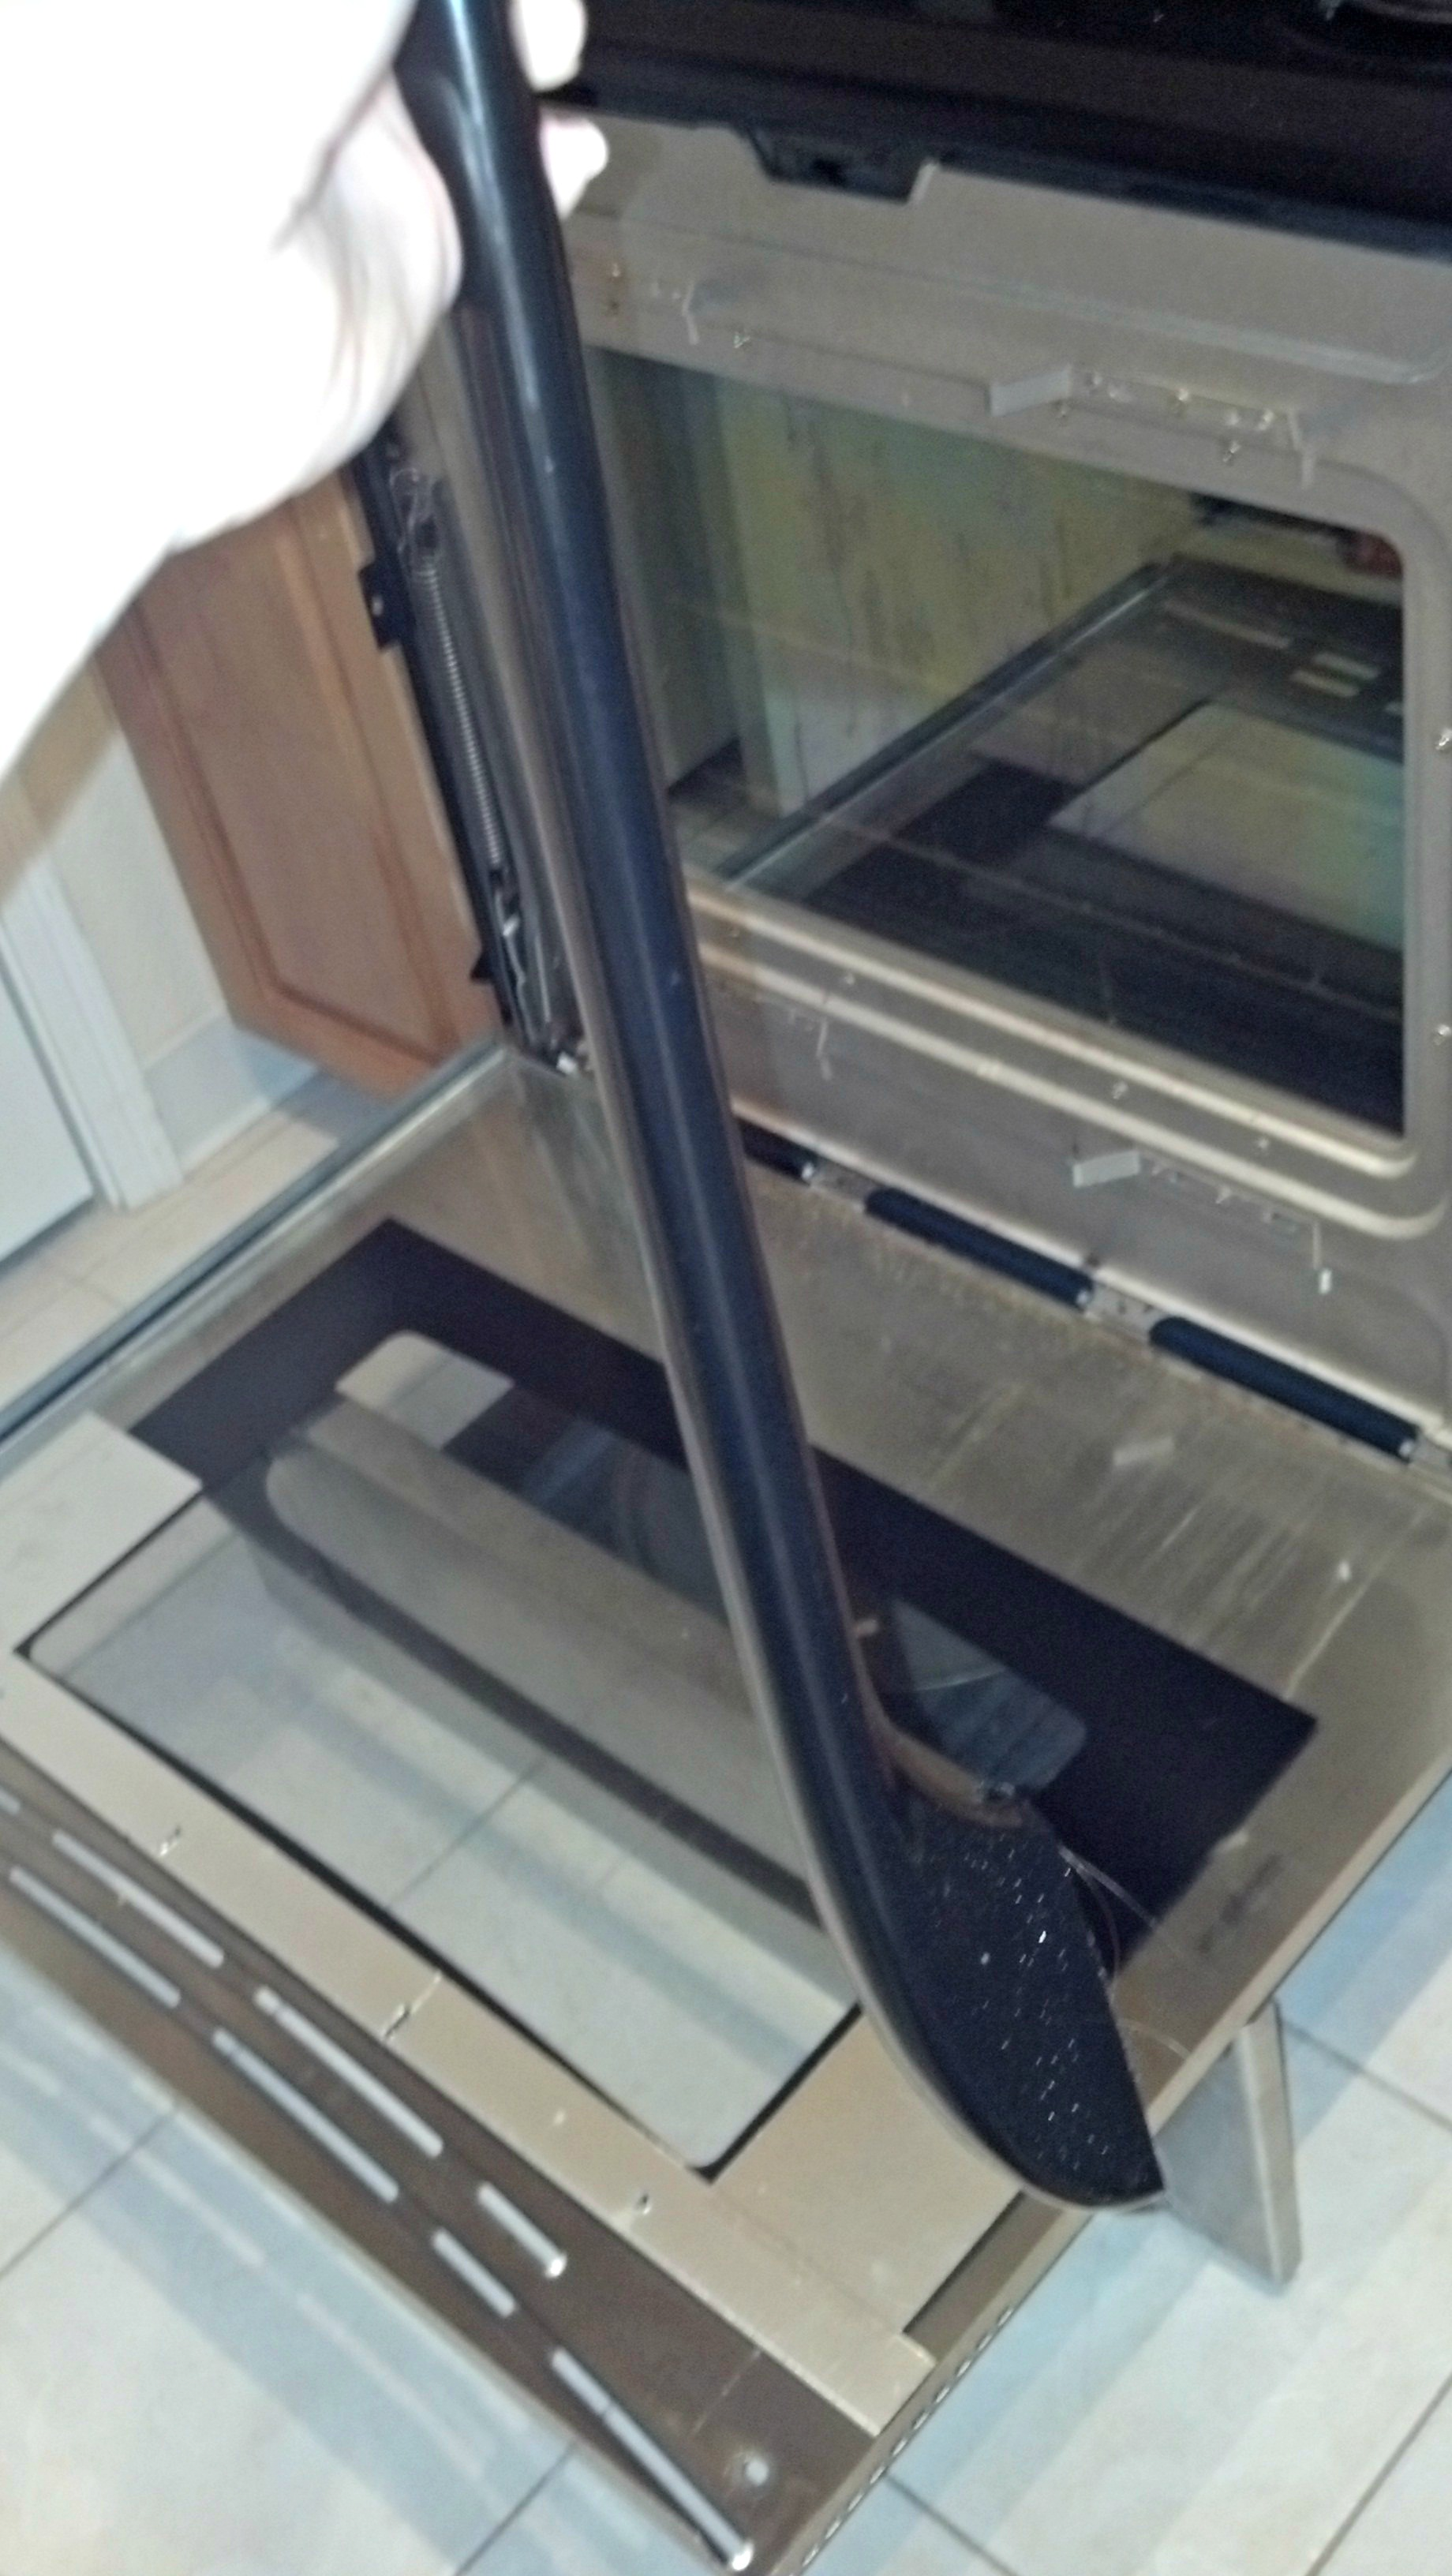 How To Polish Stainless Steel Appliances